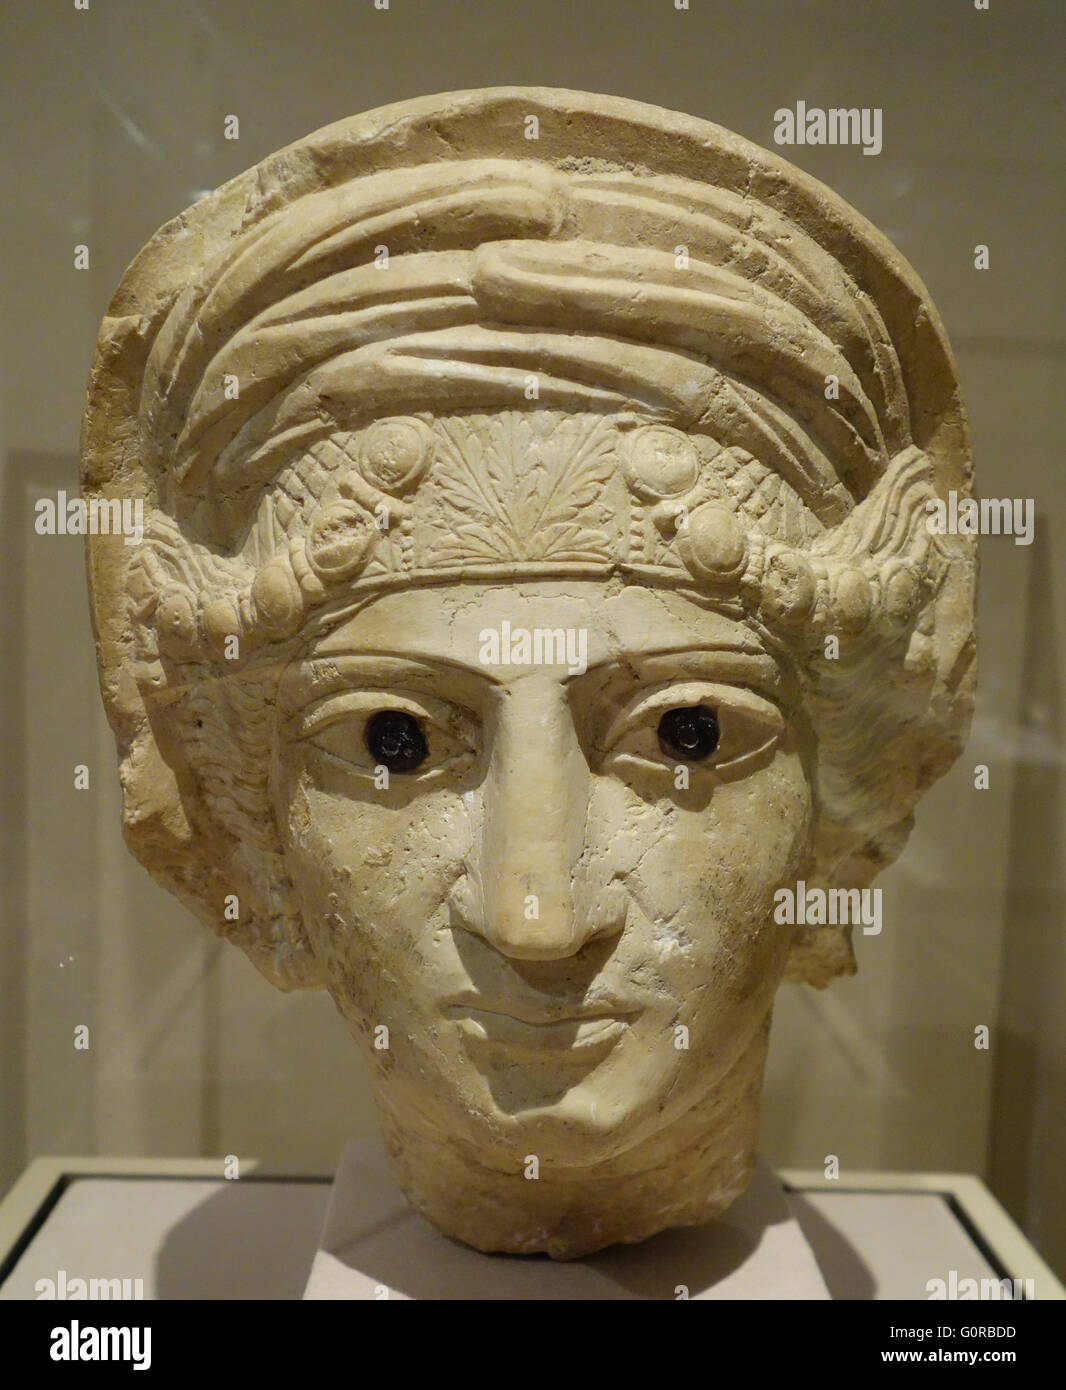 3C funerary head from Palmyra, Syria displayed in LACMA, Los Angeles, California - Stock Image